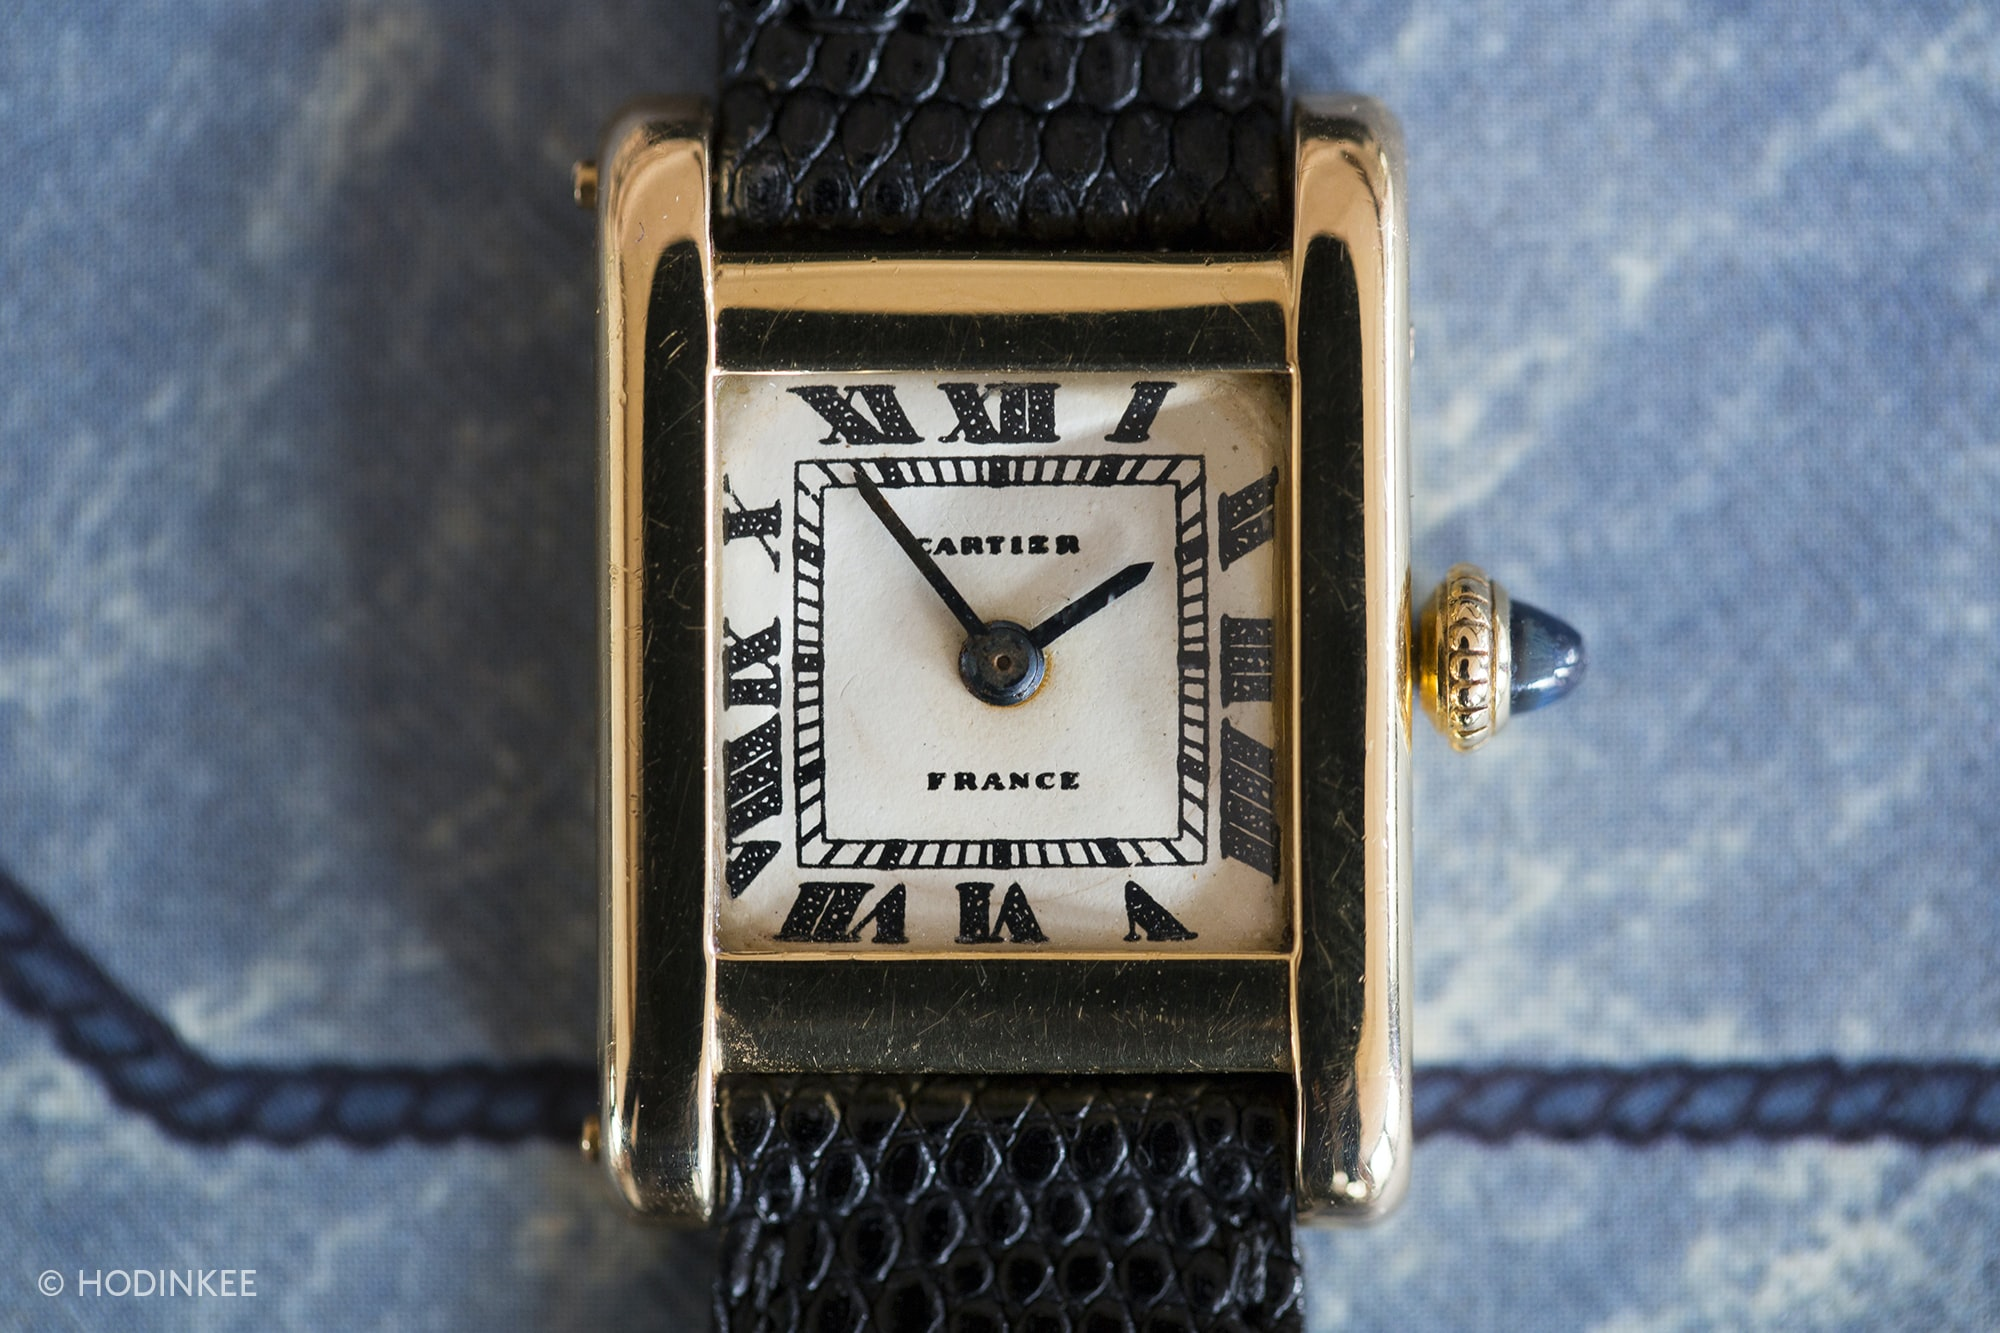 Jacqueline Kennedy Onassis, Cartier Tank,  Hands-On: The Cartier Tank That Belonged To Jacqueline Kennedy Onassis Hands-On: The Cartier Tank That Belonged To Jacqueline Kennedy Onassis B89A0240 copy